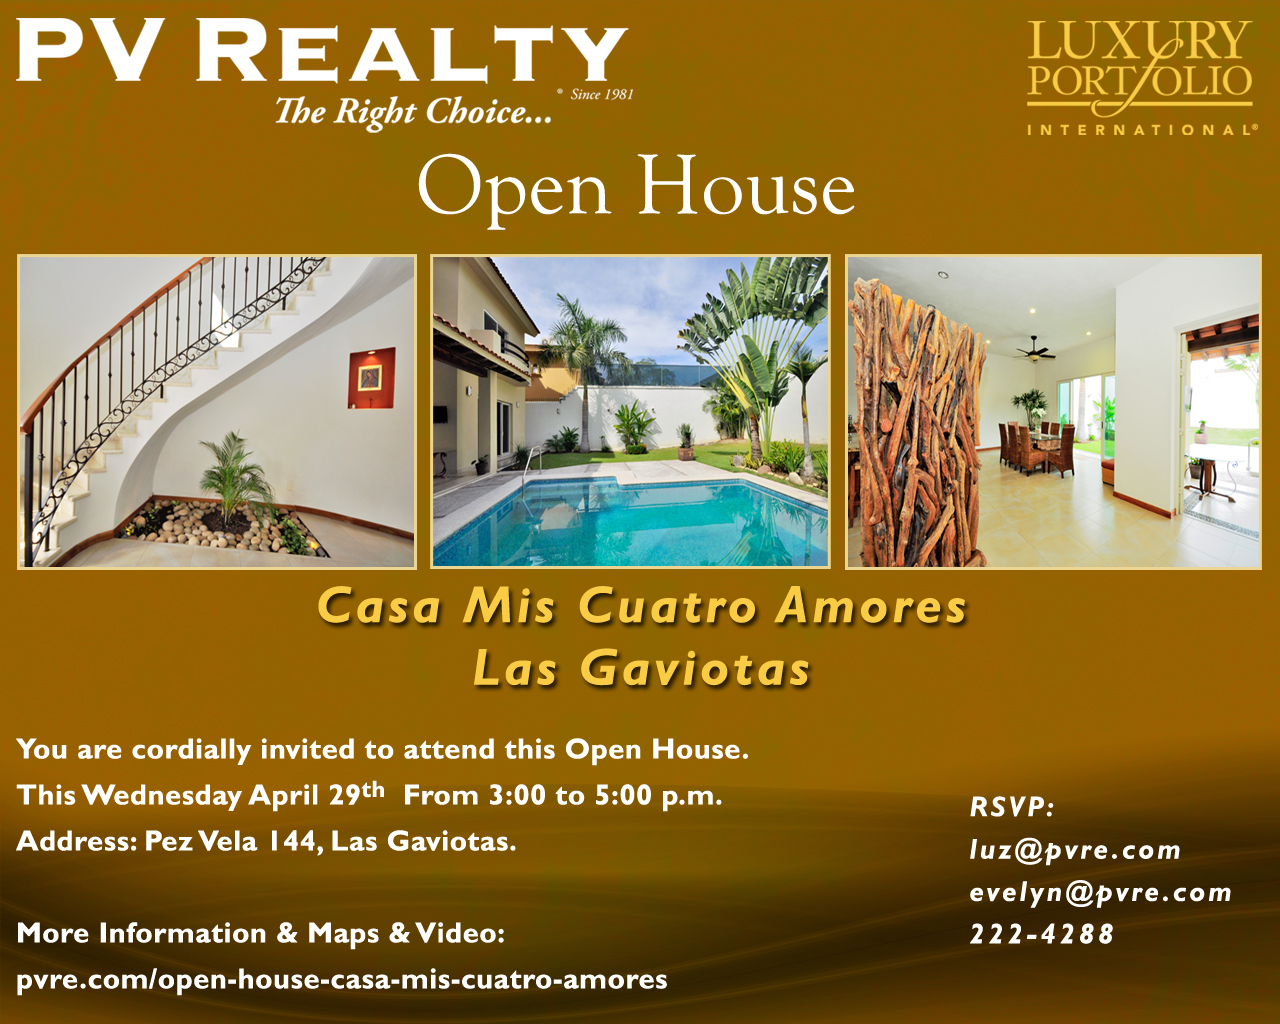 mis-cuatro-amores casa mis 4 amores open house this wednesday april 29 • 3:00 to 5:00 pm Casa Mis 4 Amores Open House This Wednesday April 29 • 3:00 to 5:00 Pm mis cuatro amores